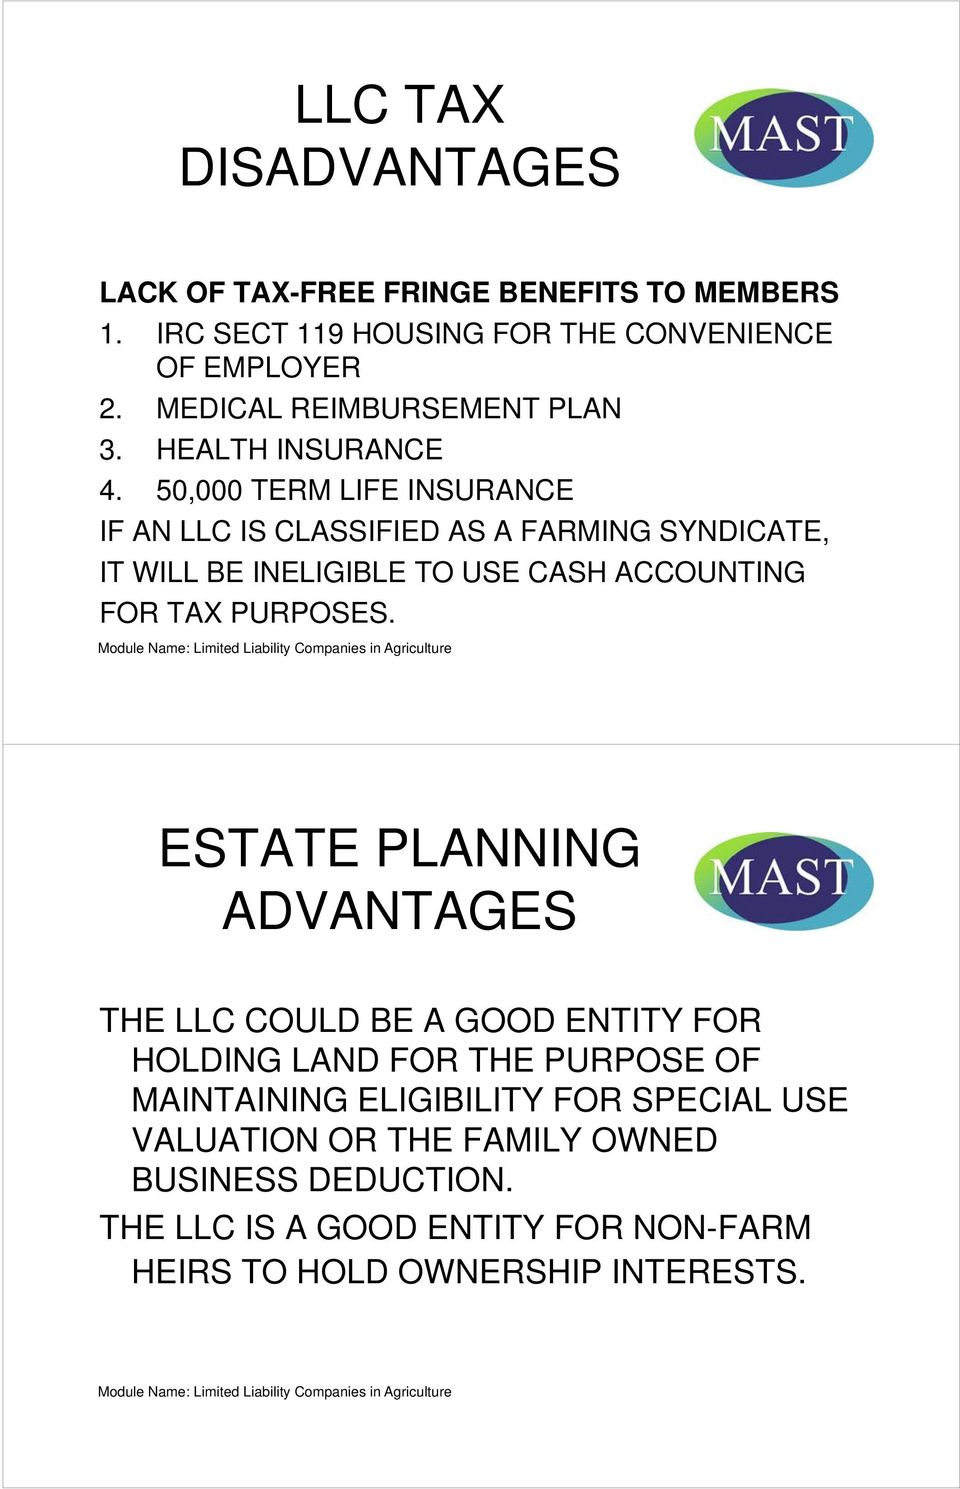 50,000 TERM LIFE INSURANCE IF AN LLC IS CLASSIFIED AS A FARMING SYNDICATE, IT WILL BE INELIGIBLE TO USE CASH ACCOUNTING FOR TAX PURPOSES.